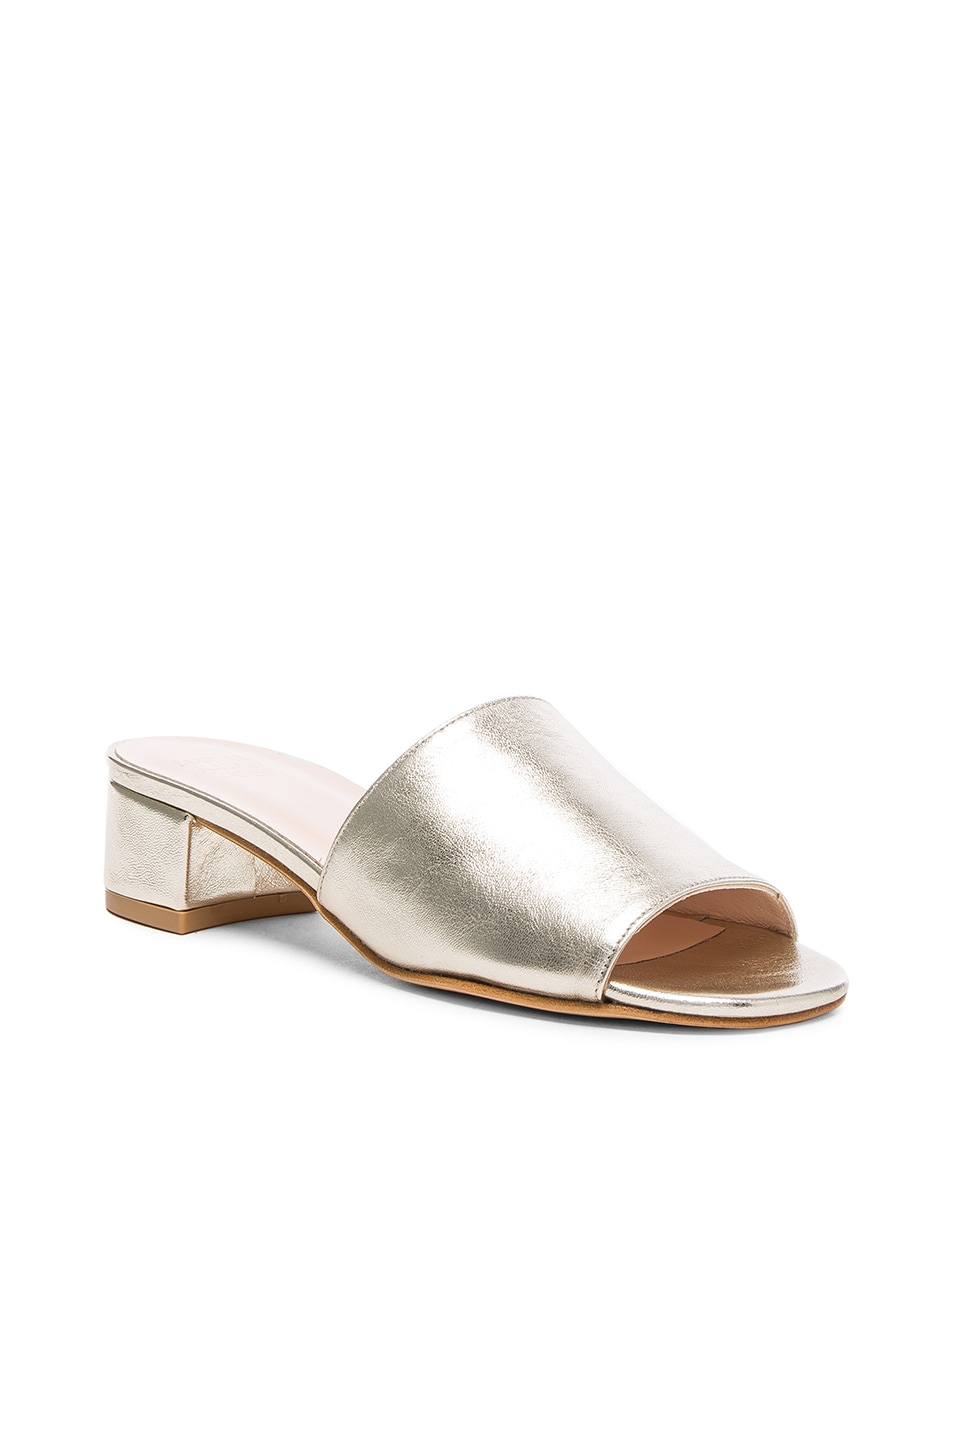 Image 2 of Maryam Nassir Zadeh Leather Sophie Slides in Prosecco Metallic